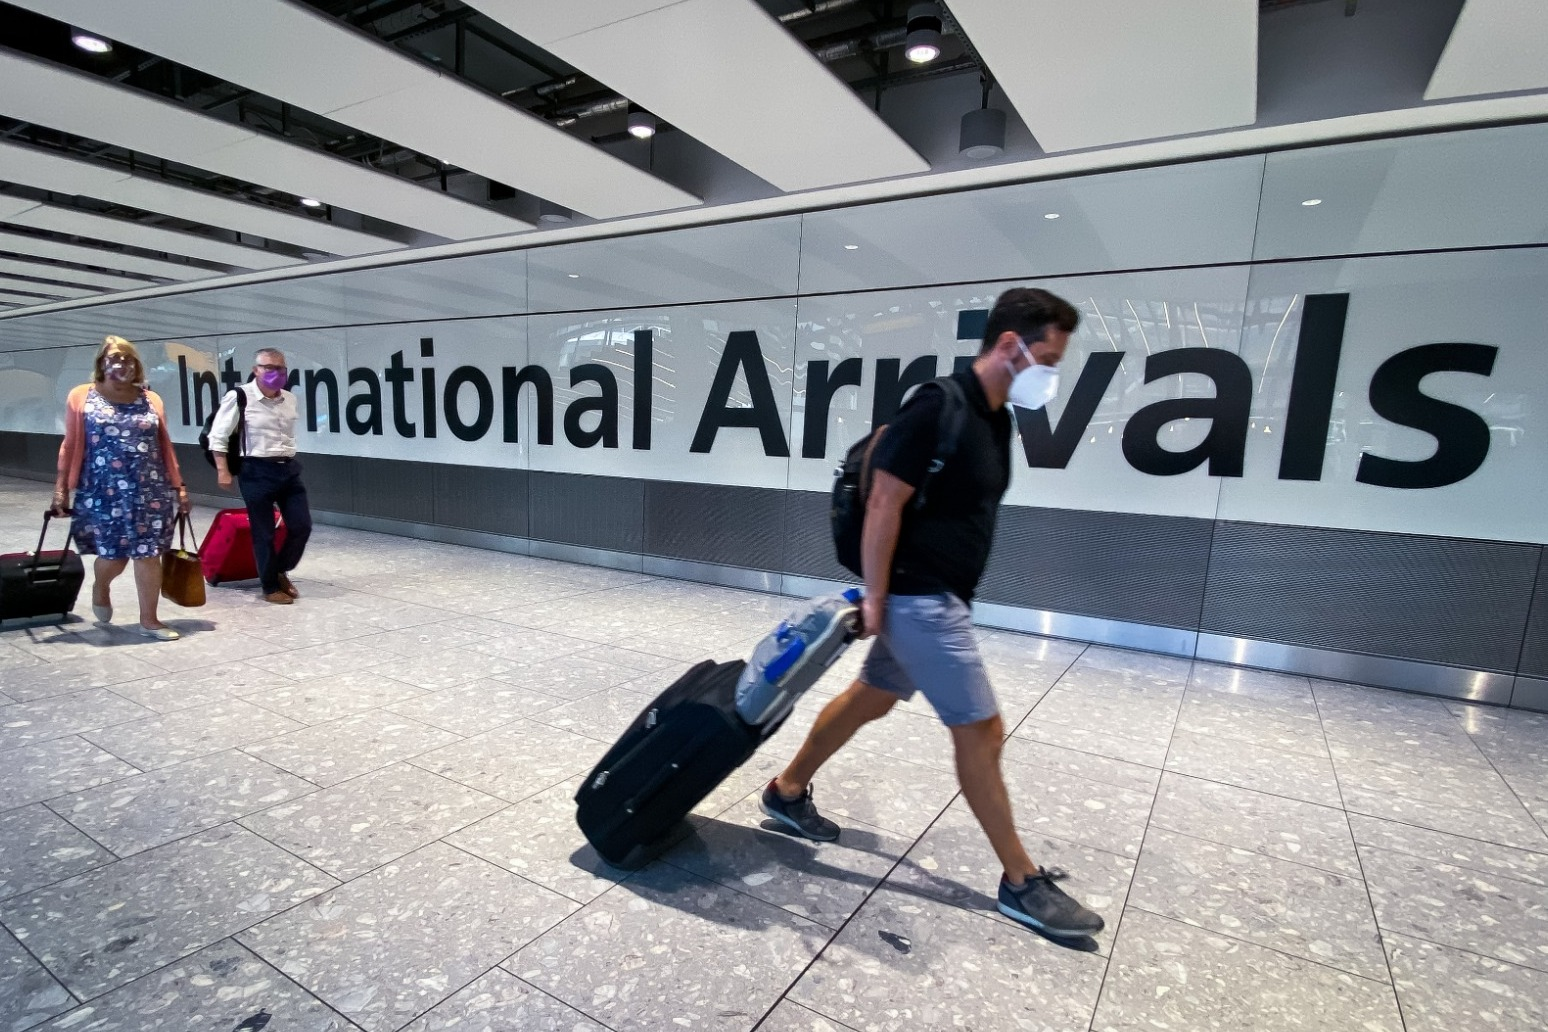 Heathrow Airport strike cancelled after new pay offer